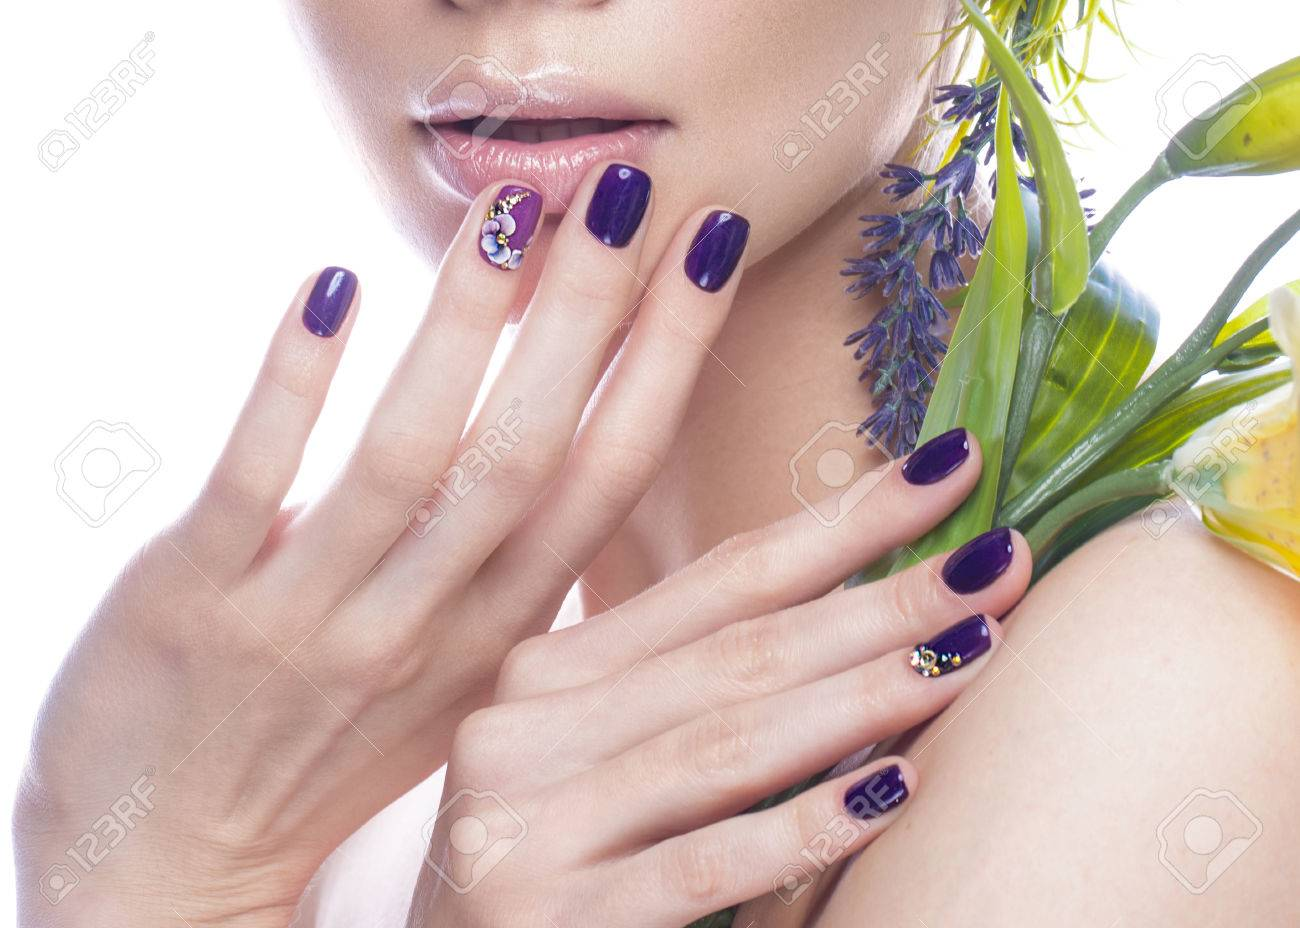 Beautiful Girl With Flowers And Design Nails Manicure Beauty